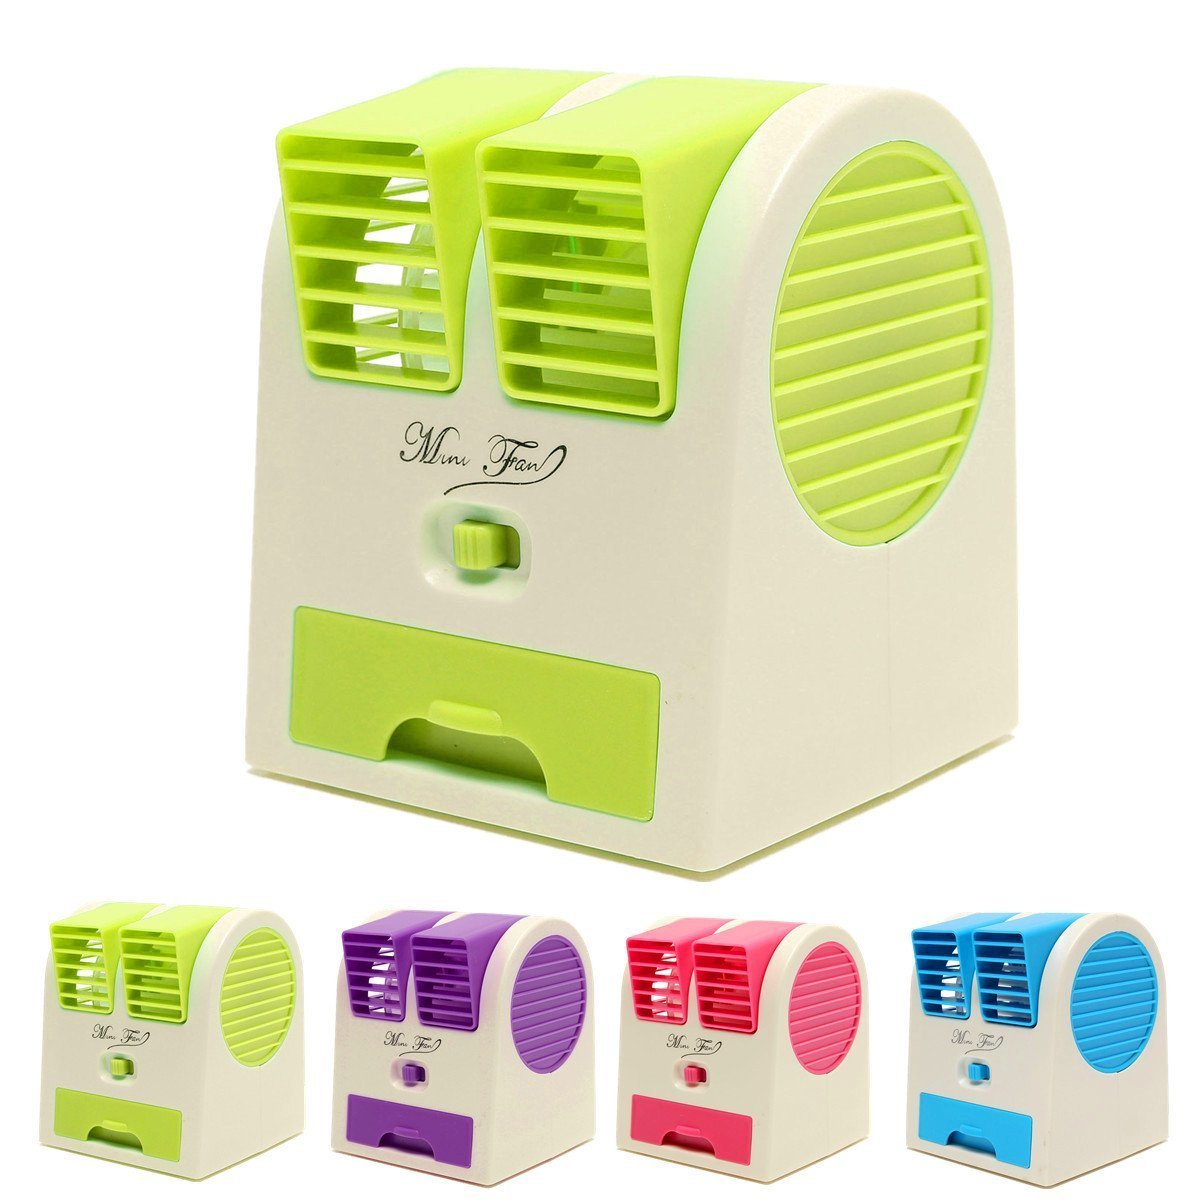 Best Air cooler under Rs 300 in India